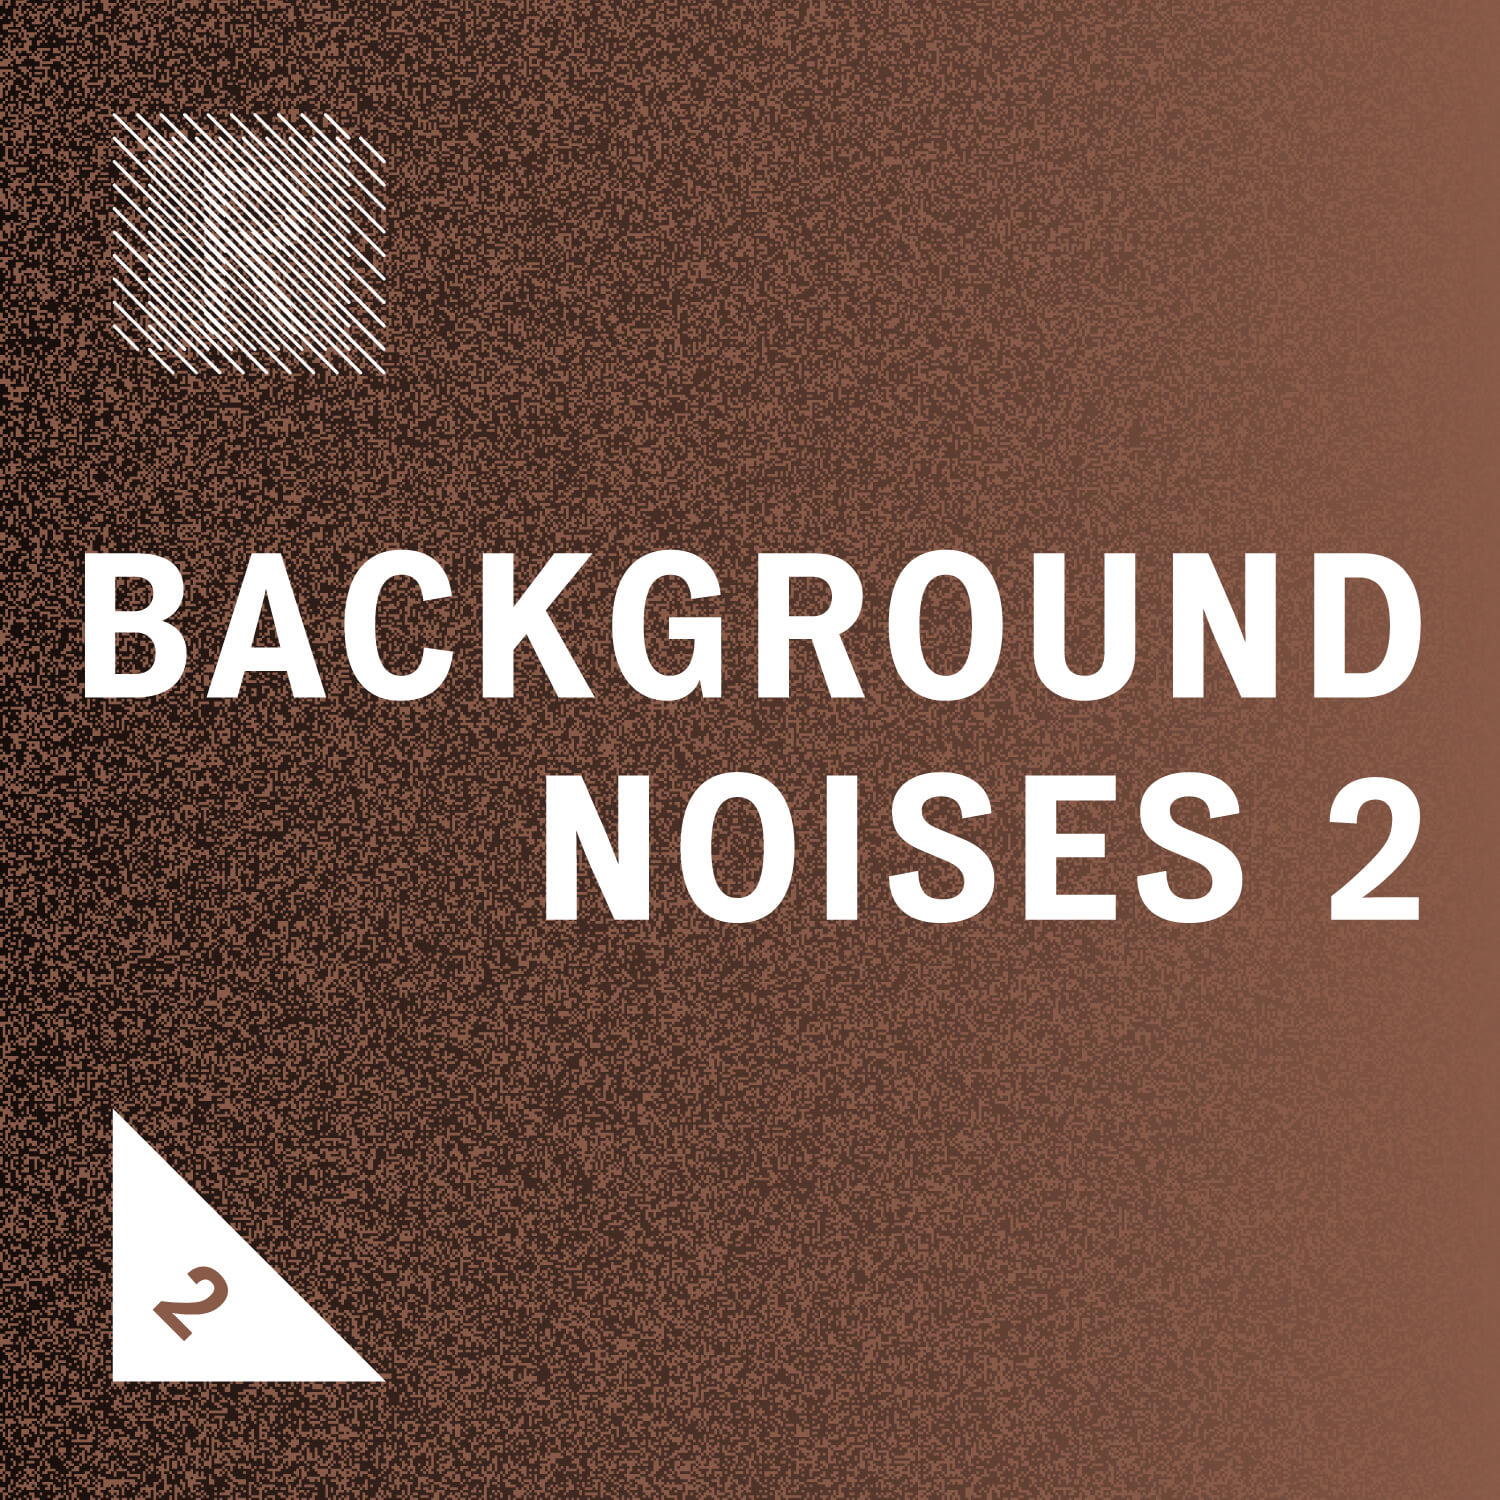 Riemann – Background Noises 2